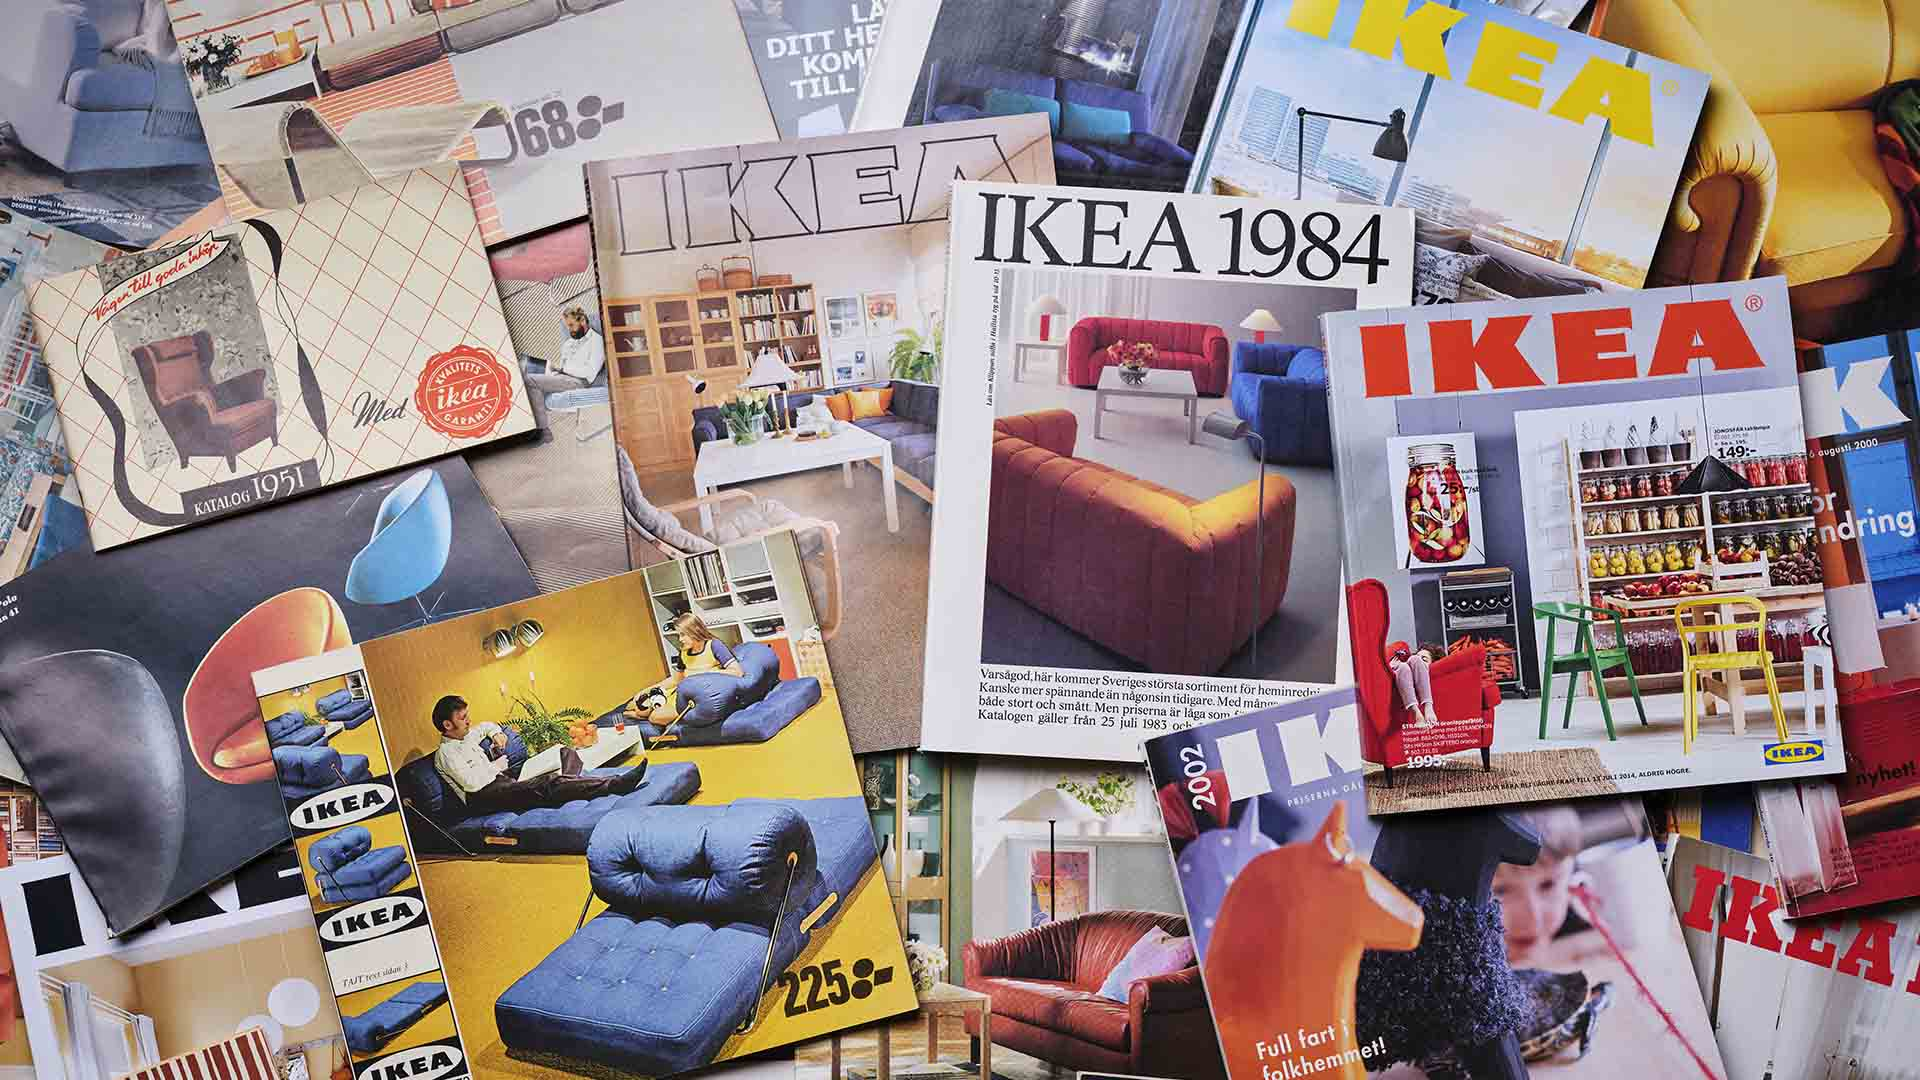 IKEA Is Ditching Its Printed Catalogue After 70 Years